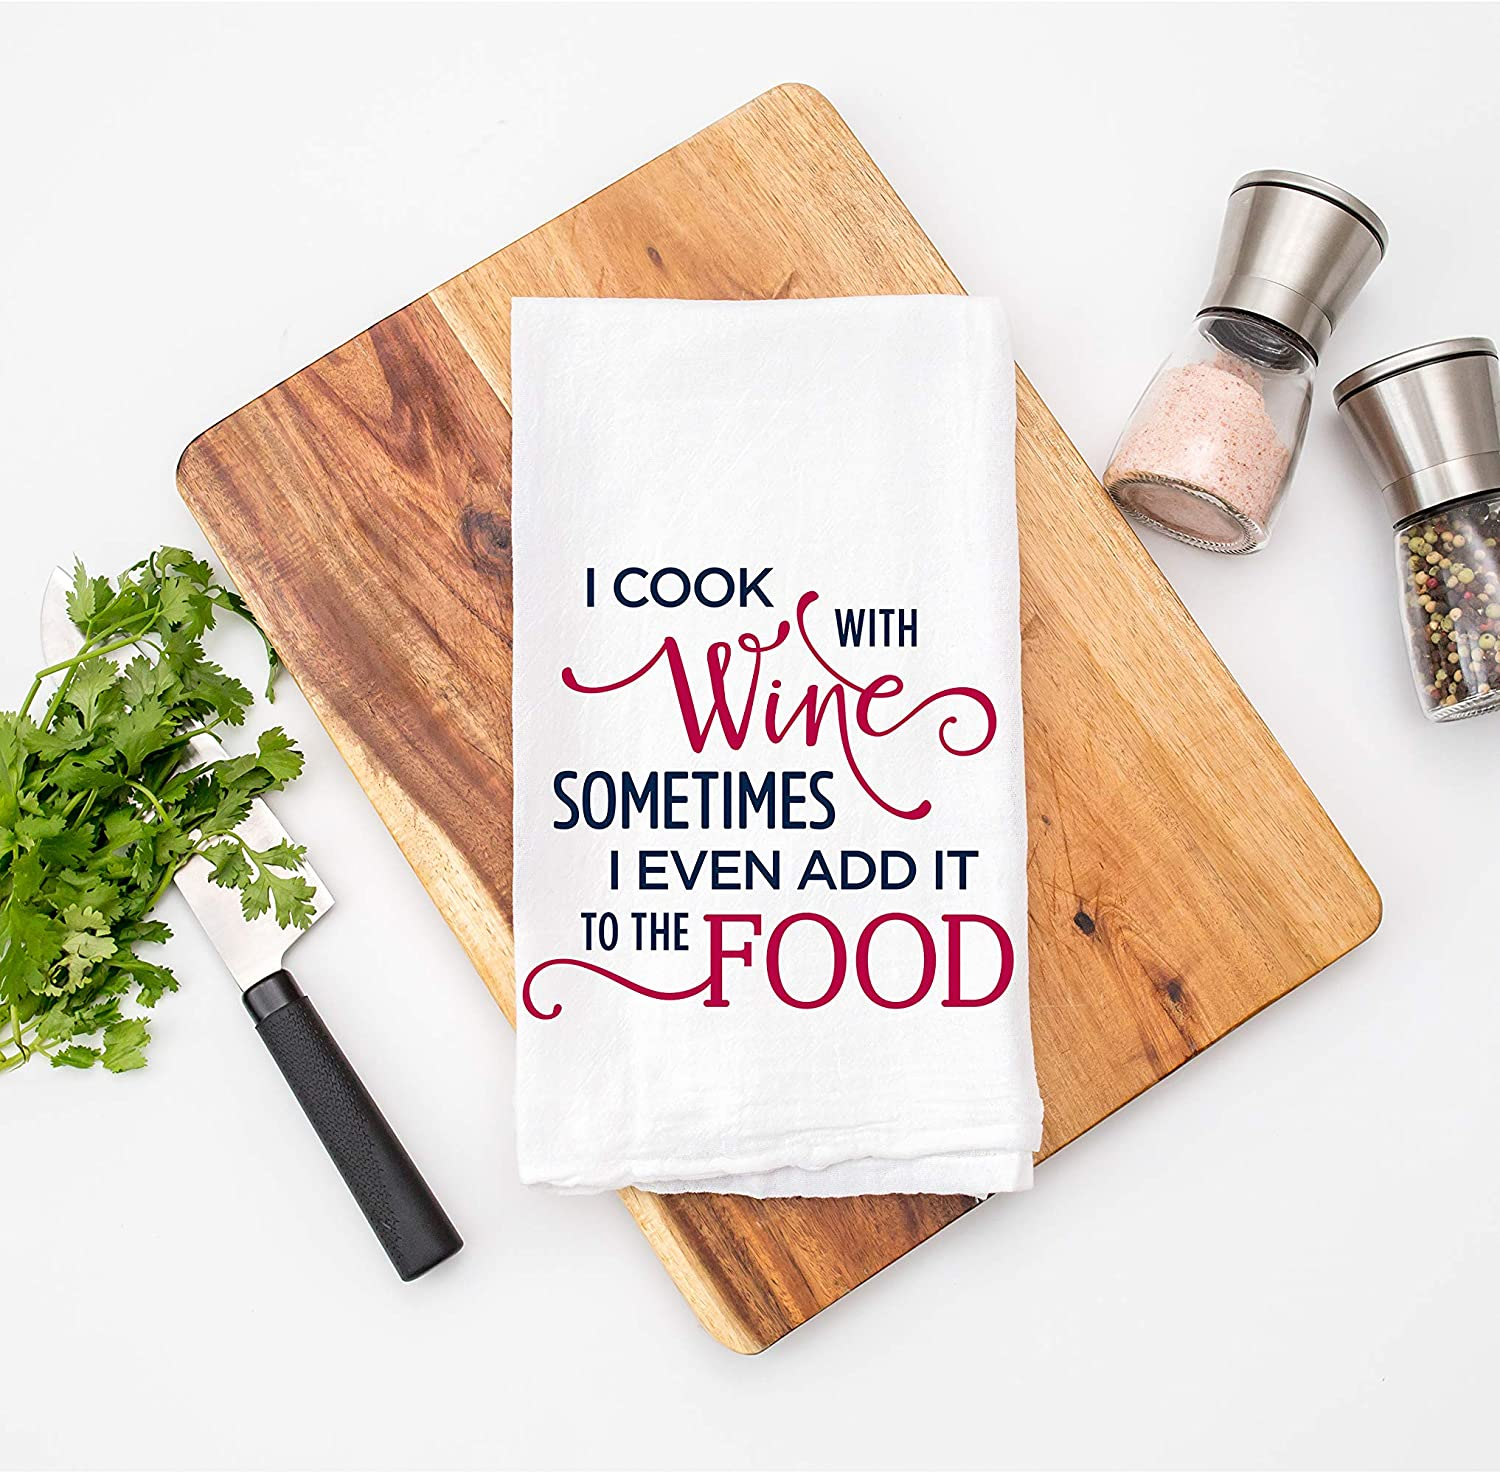 I Cook with Wine - Dish Towel Kitchen Tea Towel Funny Saying Humorous Flour Sack Towels Decoration Great Housewarming Gift 28 inch by 28 inch, 100% Cotton, Multi-Purpose Towel